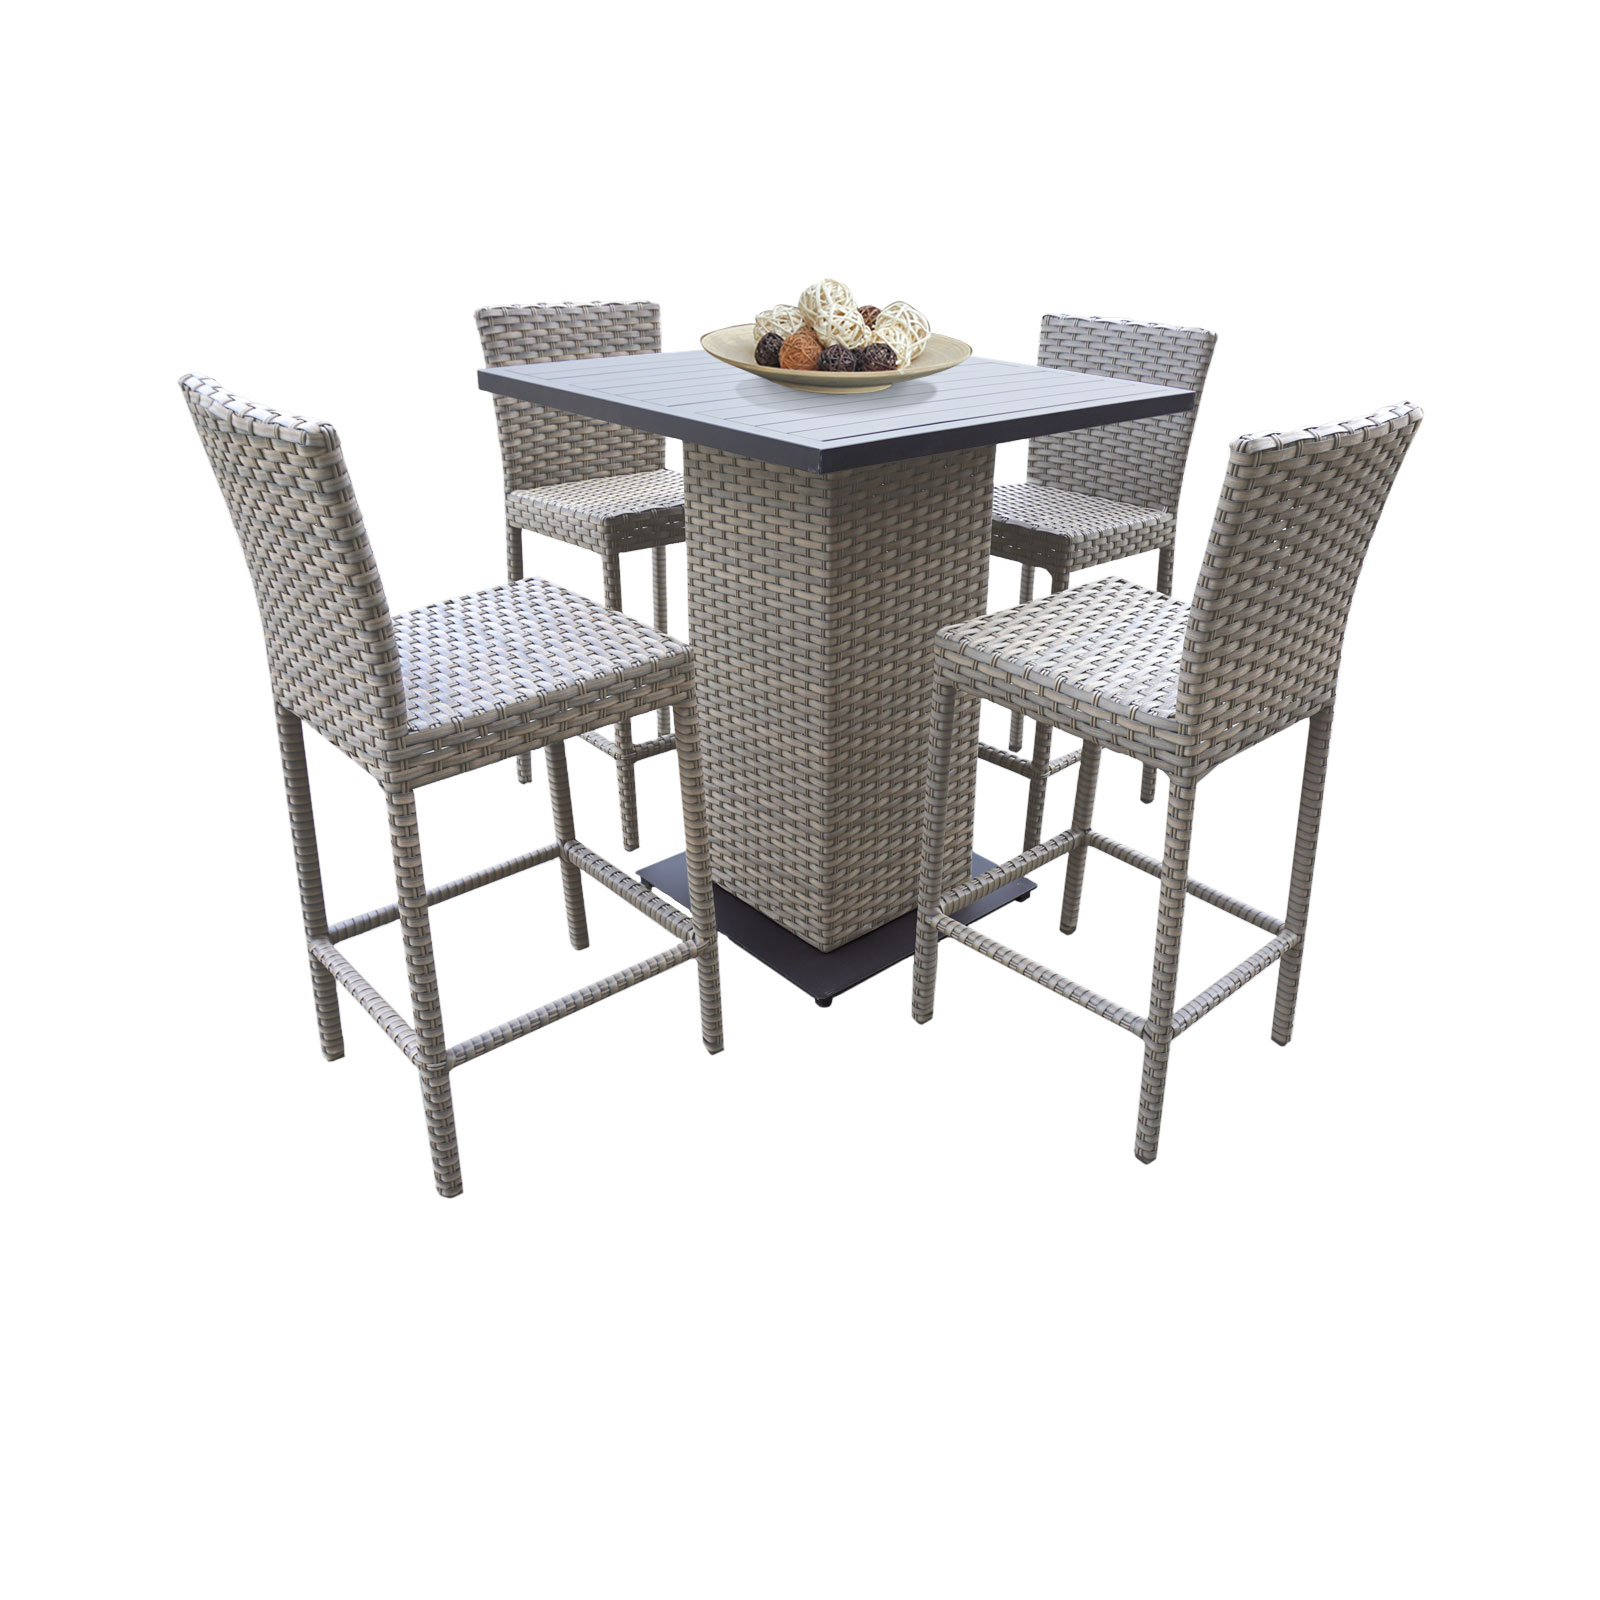 Harmony Pub Table Set With Bar Stools 5 Piece Outdoor Wicker Patio Furniture by TK Classics